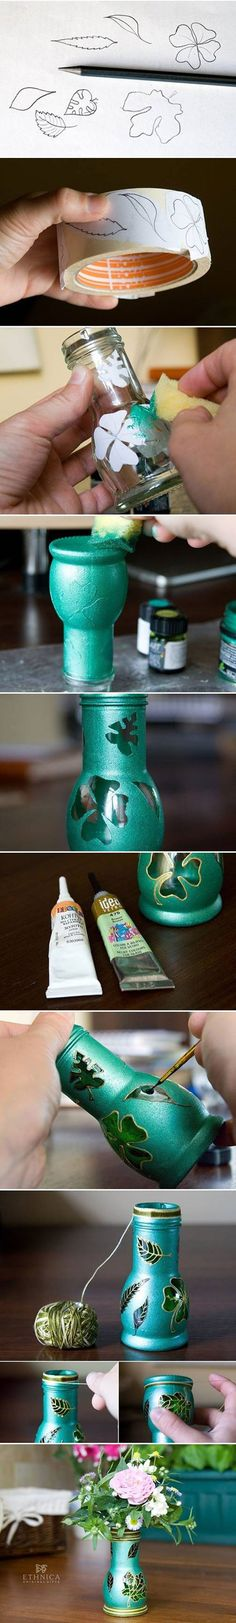 Handmade vase design -Tutorial